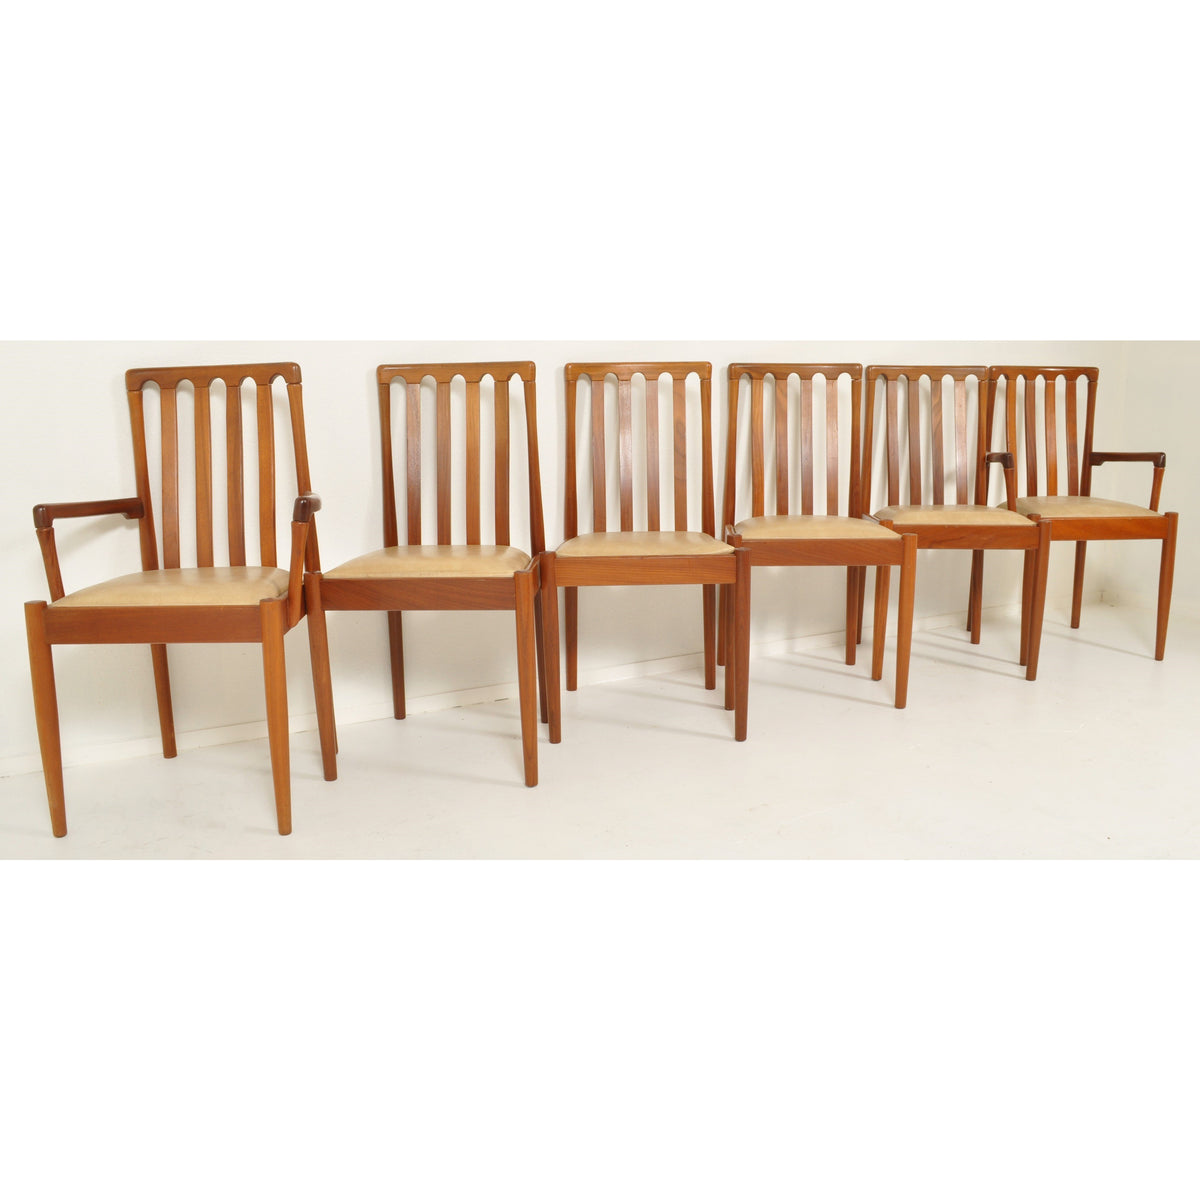 Set Of 6 Mid Century Modern Danish Teak Dining Chairs 1960s Bloomsbury Fine Art Antiques